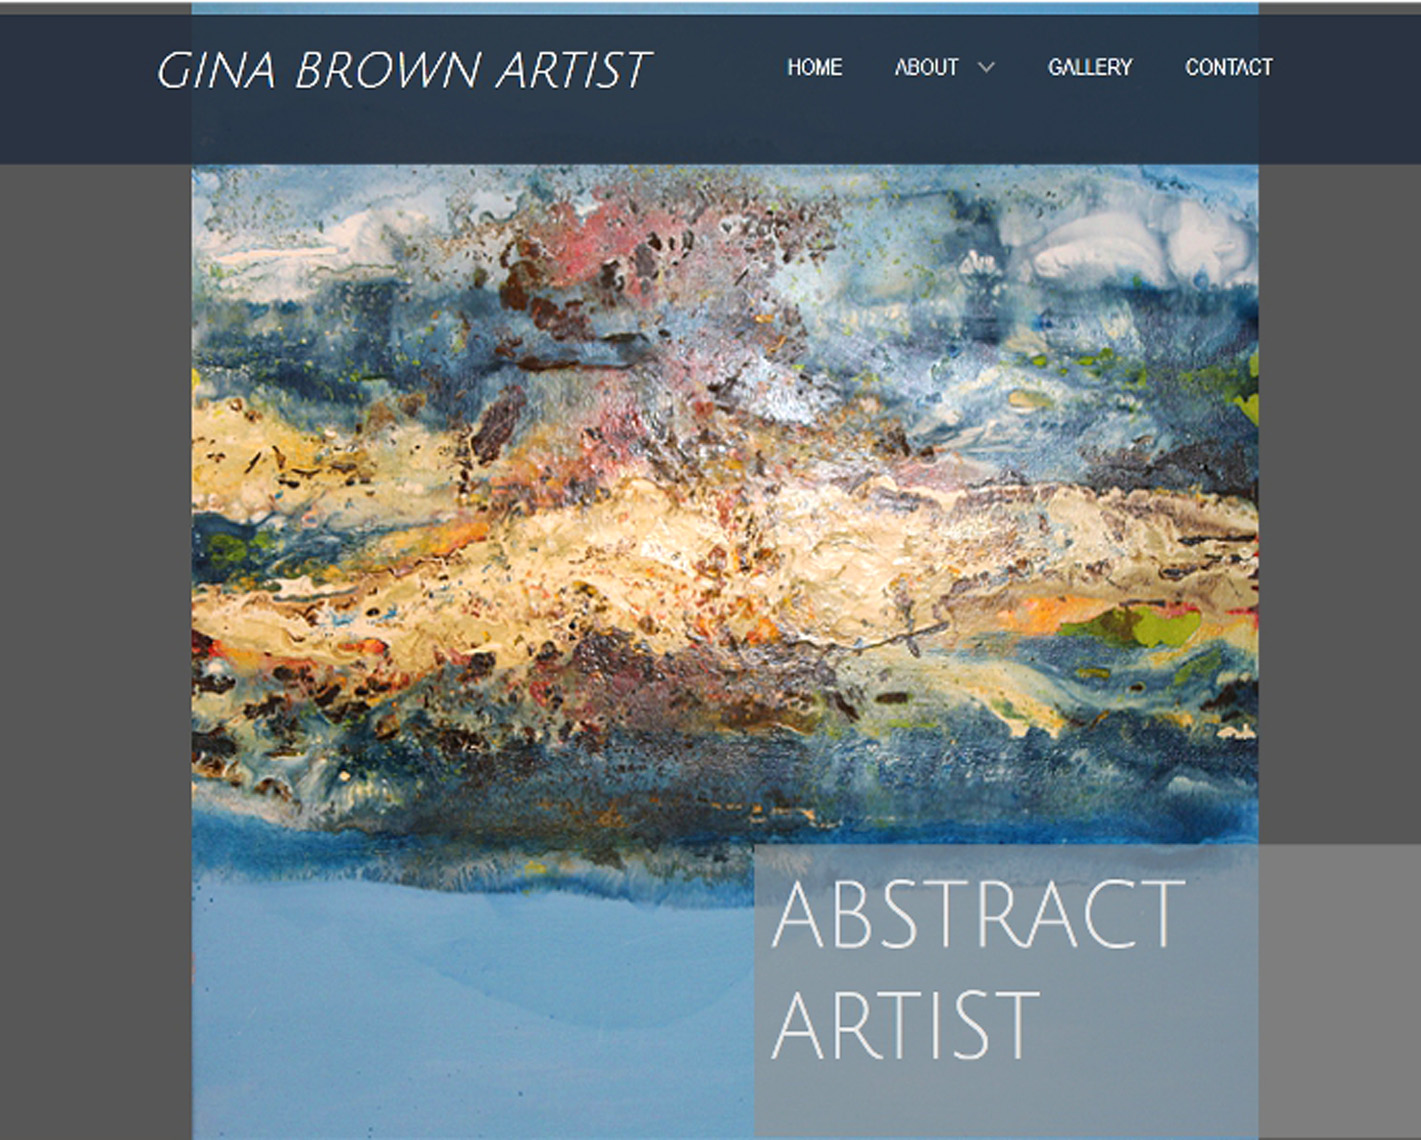 ginabrownartist.com